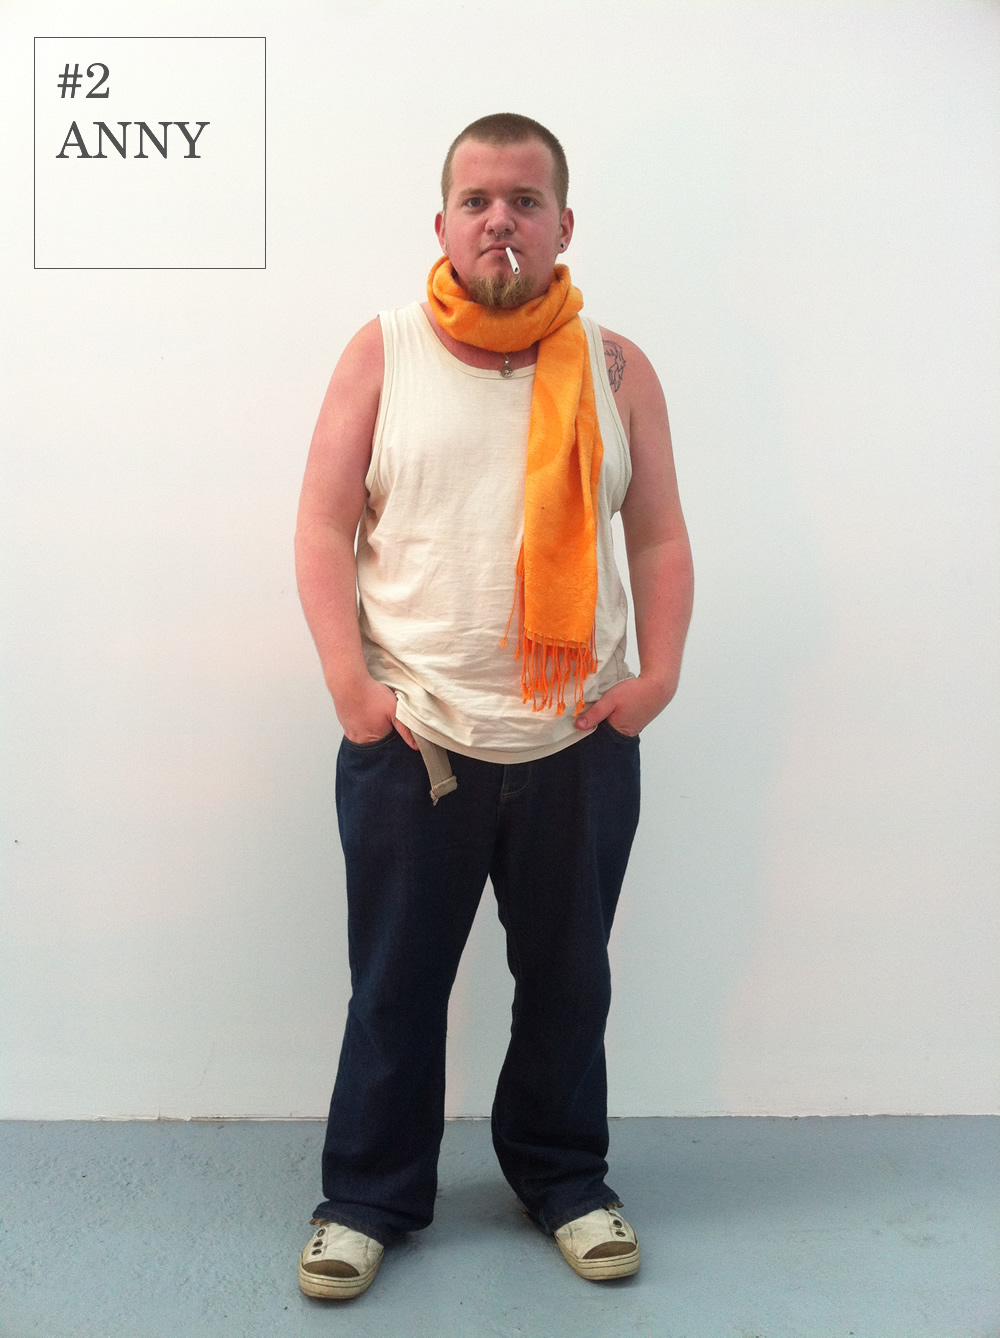 Anny demonstrates how one item can instantly put a new spin on the everyday capsule wardrobe.   He layers a simple saffron scarf (an appropriately autumnal shade) over a staple jeans and vest combo instantly bringing the vibrant style of Amsterdam to the sleepy shores of Dorset.      Vest: Mantaray         Jeans: FCUK         Shoes: Fly London      Scarf : Amsterdam market stall                  (All facial accesories from Paradox, Bournemouth)